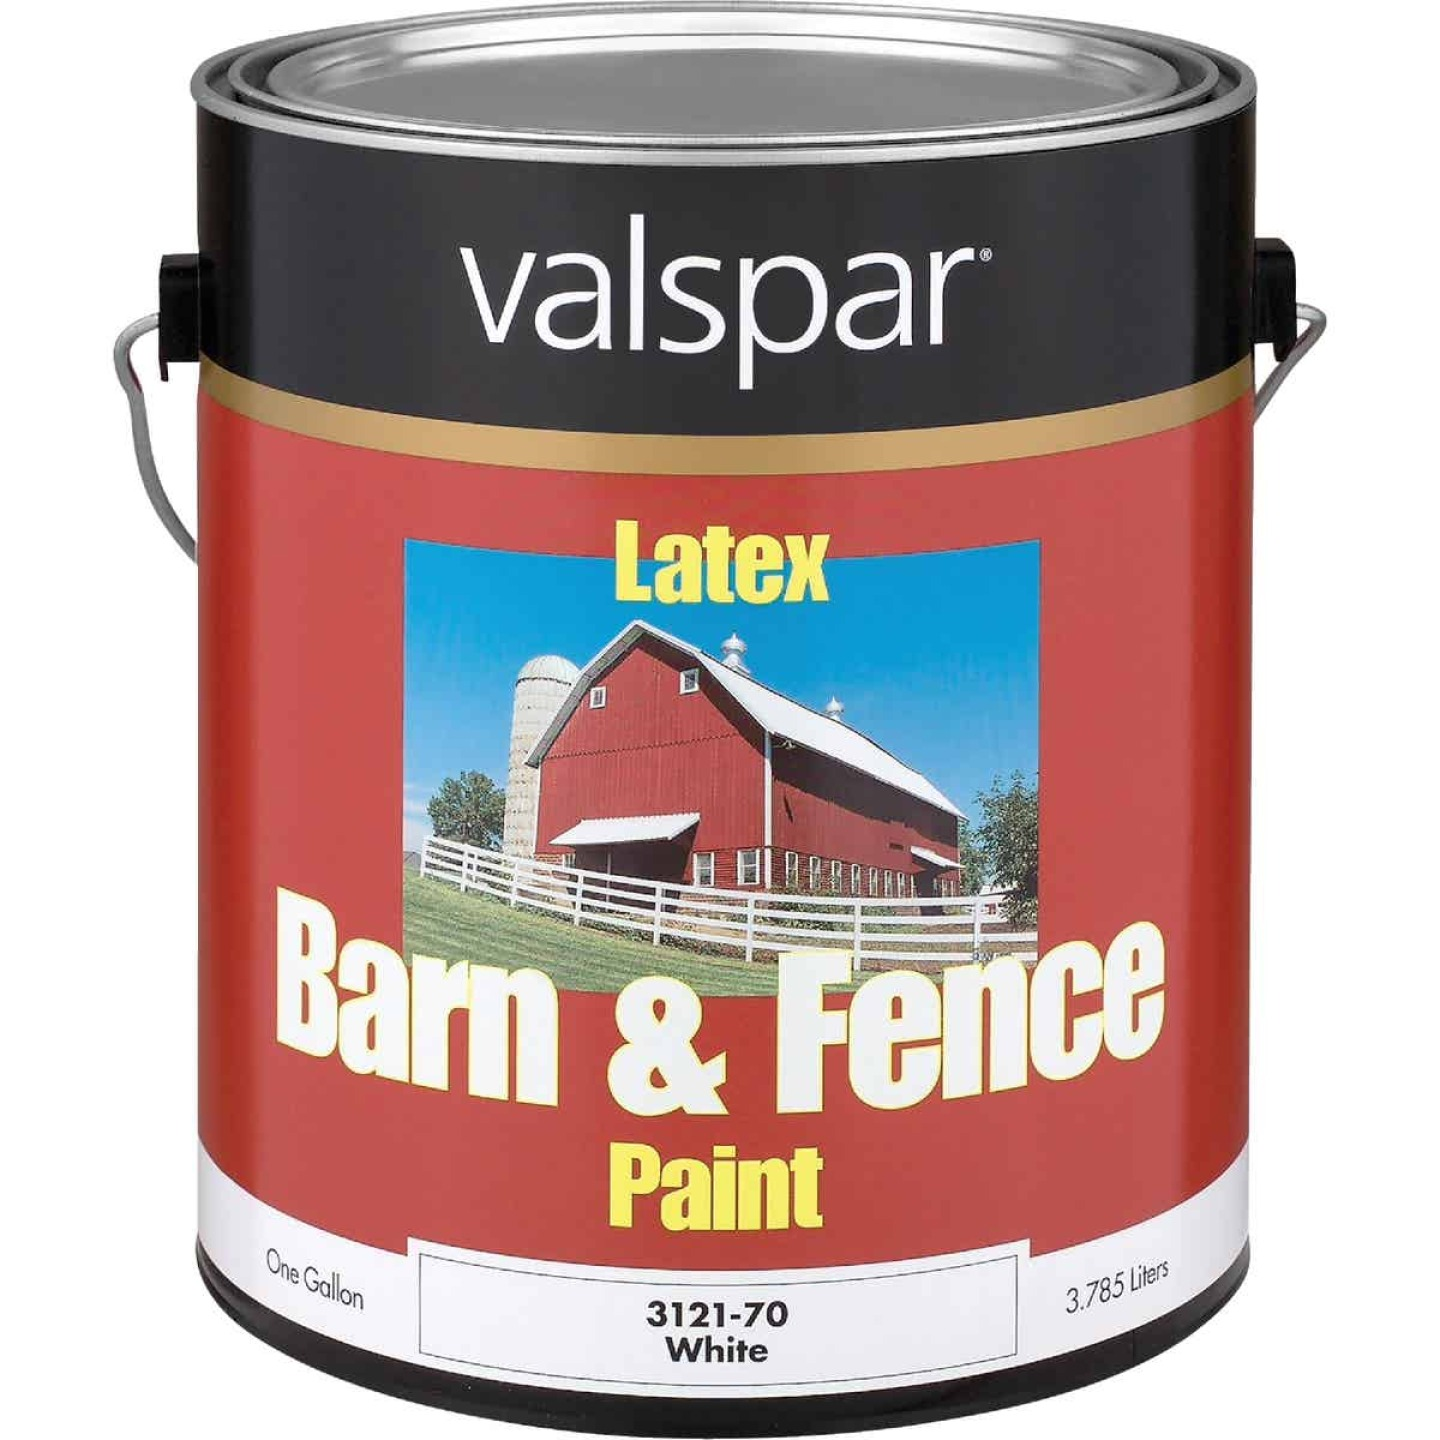 Valspar Latex Paint & Primer In One Flat Barn & Fence Paint, White, 1 Gal. Image 1